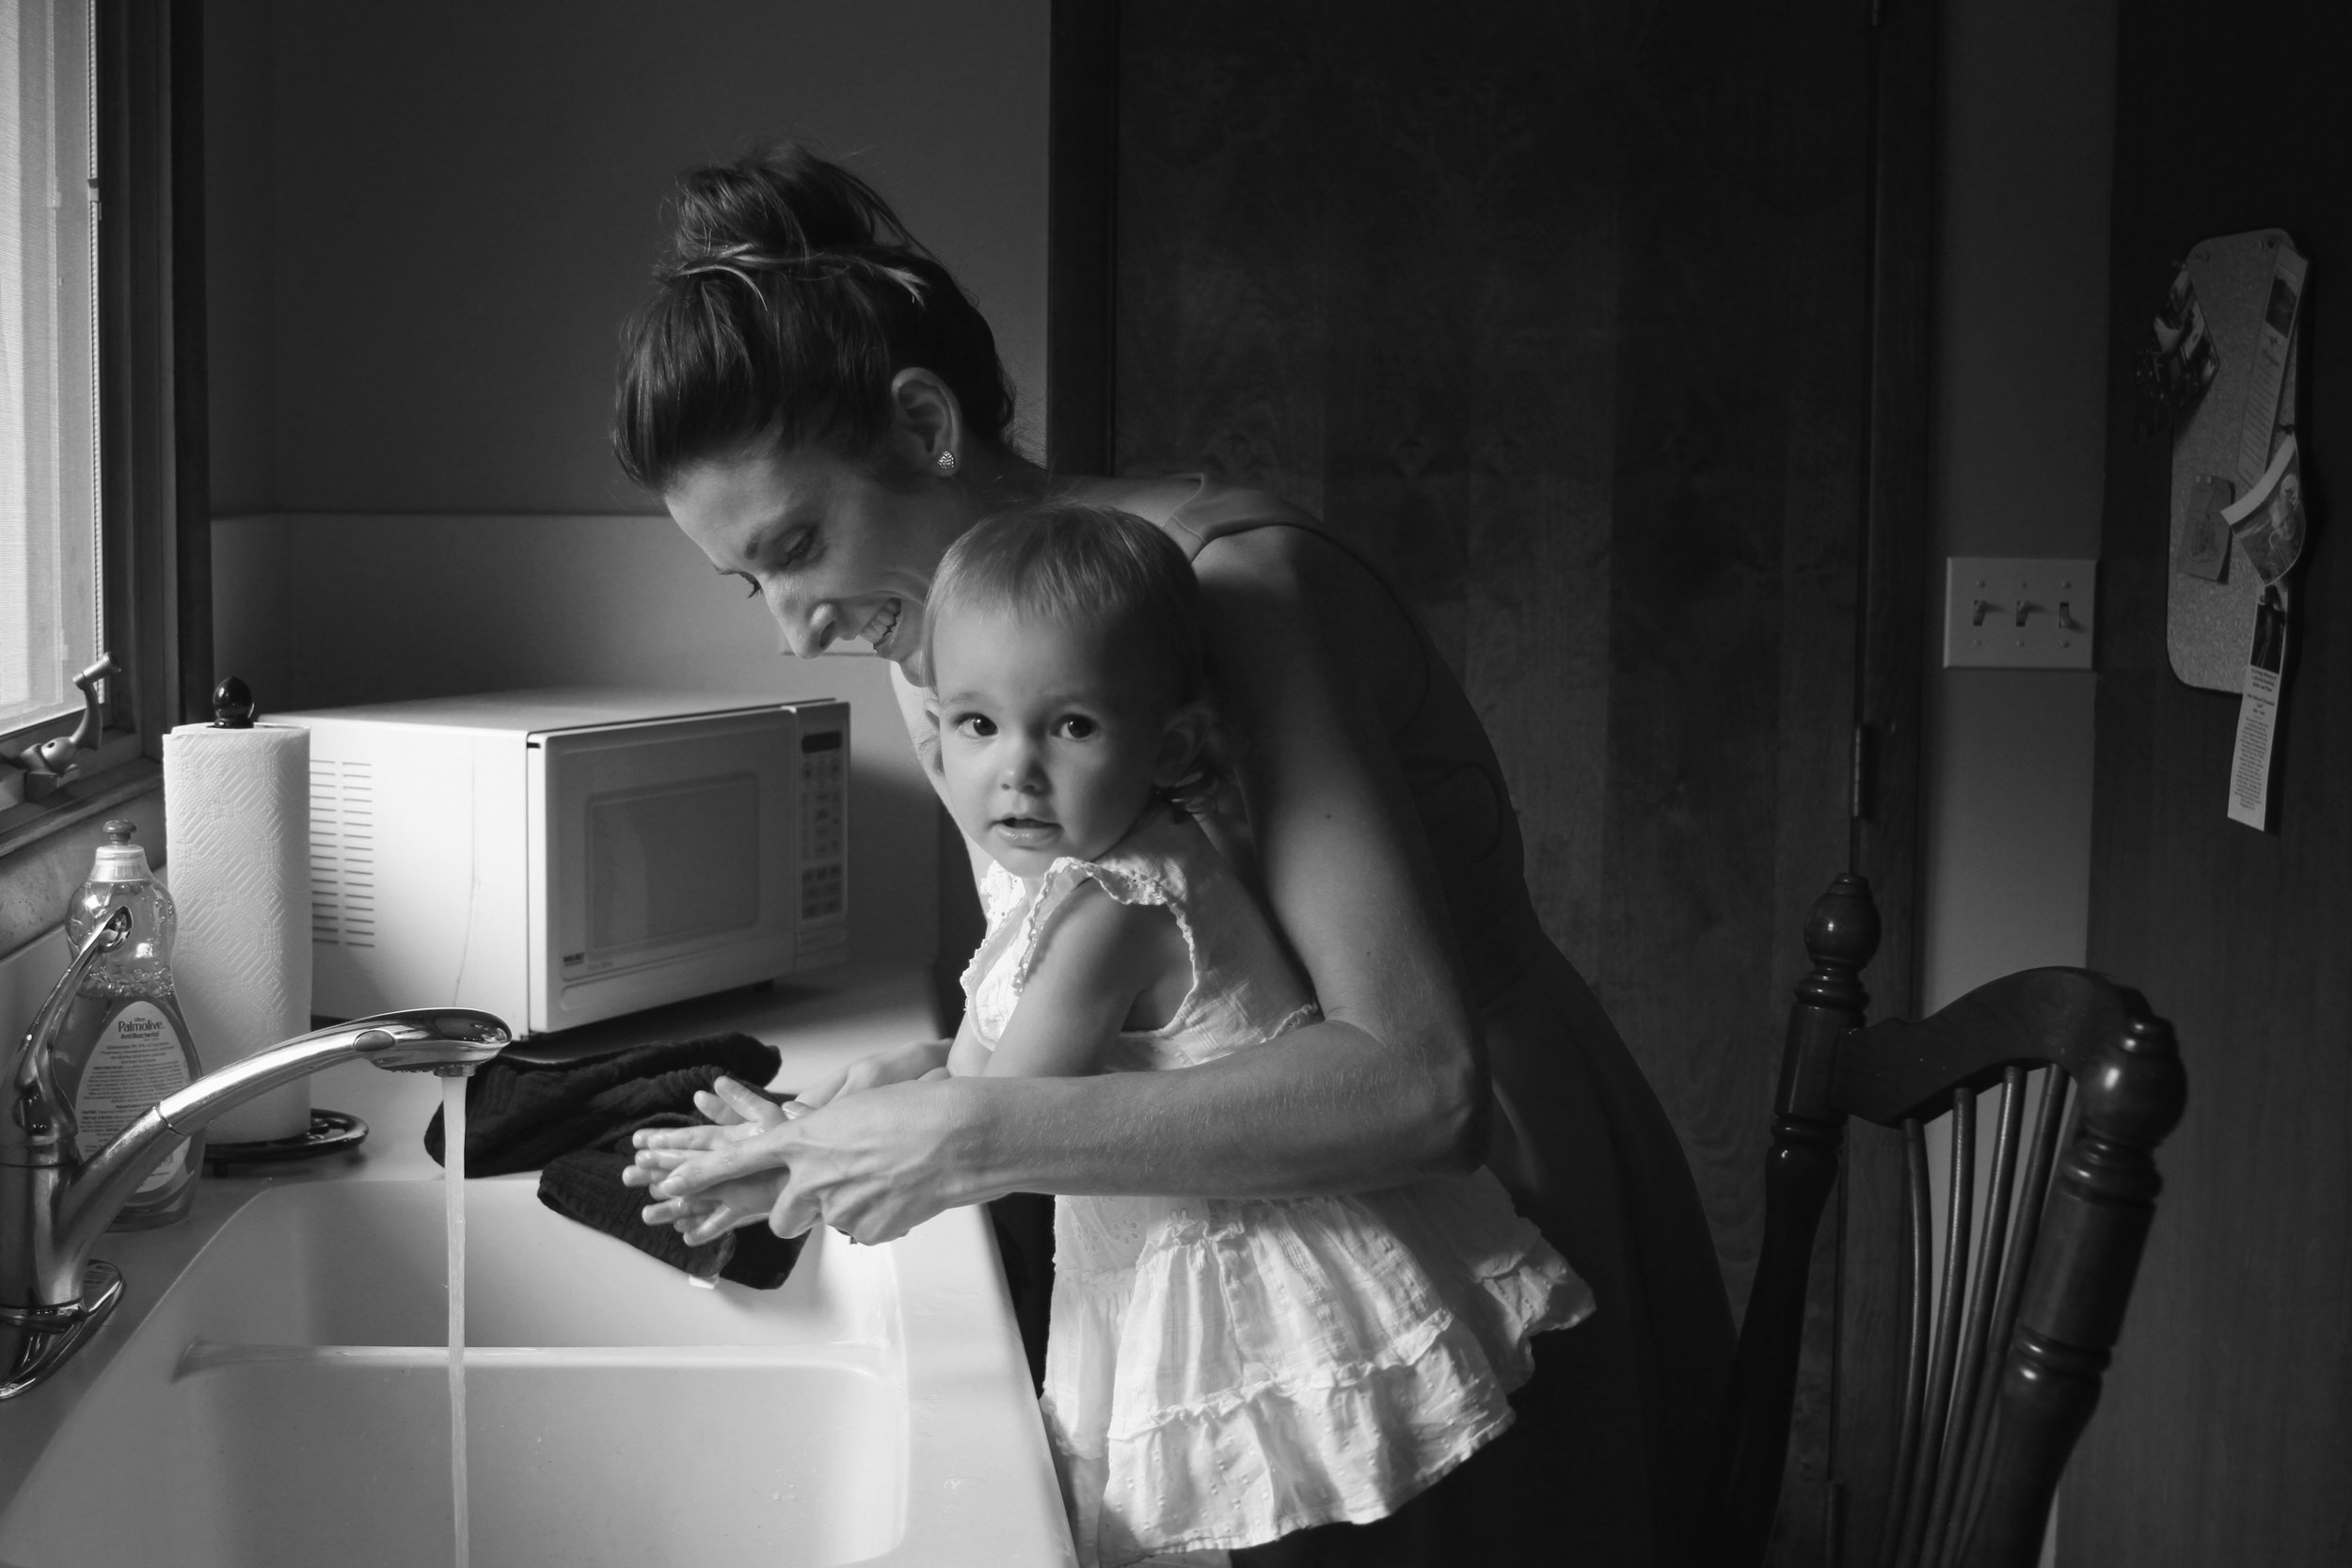 adult-baby-black-and-white-1089077.jpg